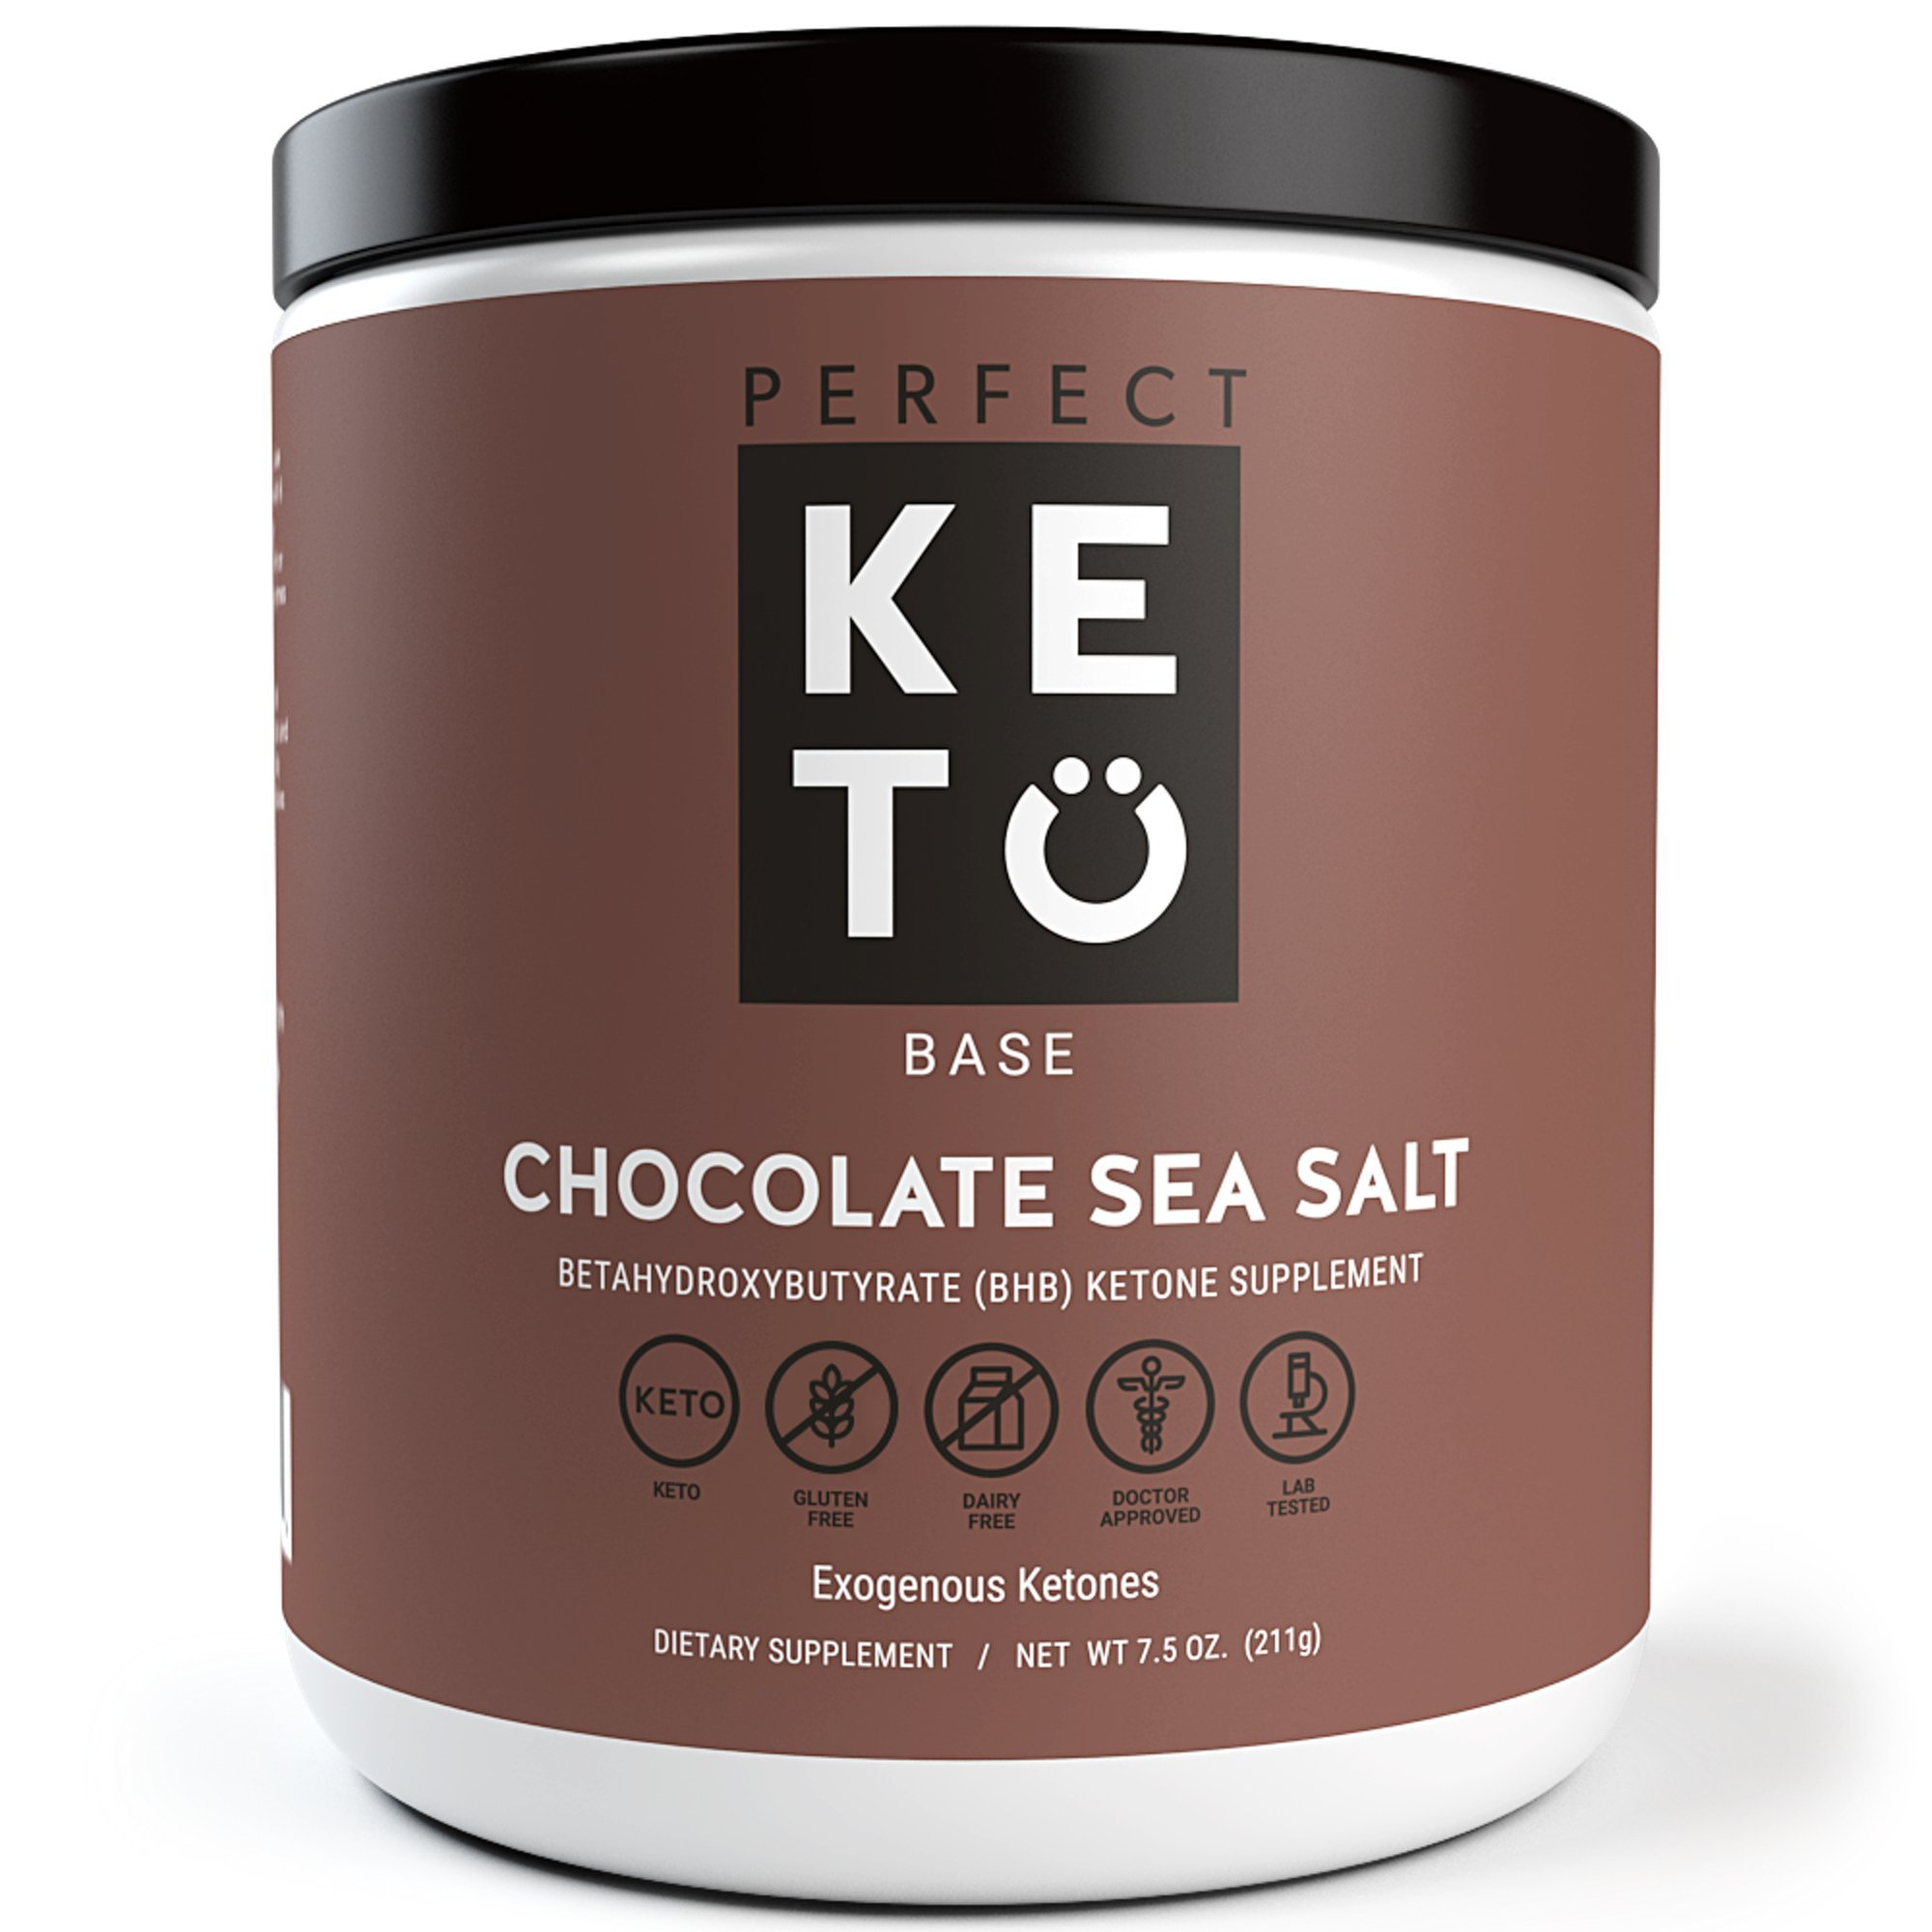 Perfect Keto Chocolate Exogenous Ketones- Base BHB Salts Supplement - Ketones for Ketogenic Diet Best to Burn Fat for Fuel to Support Energy, Focus and Ketosis Beta-Hydroxybutyrate BHB Salt